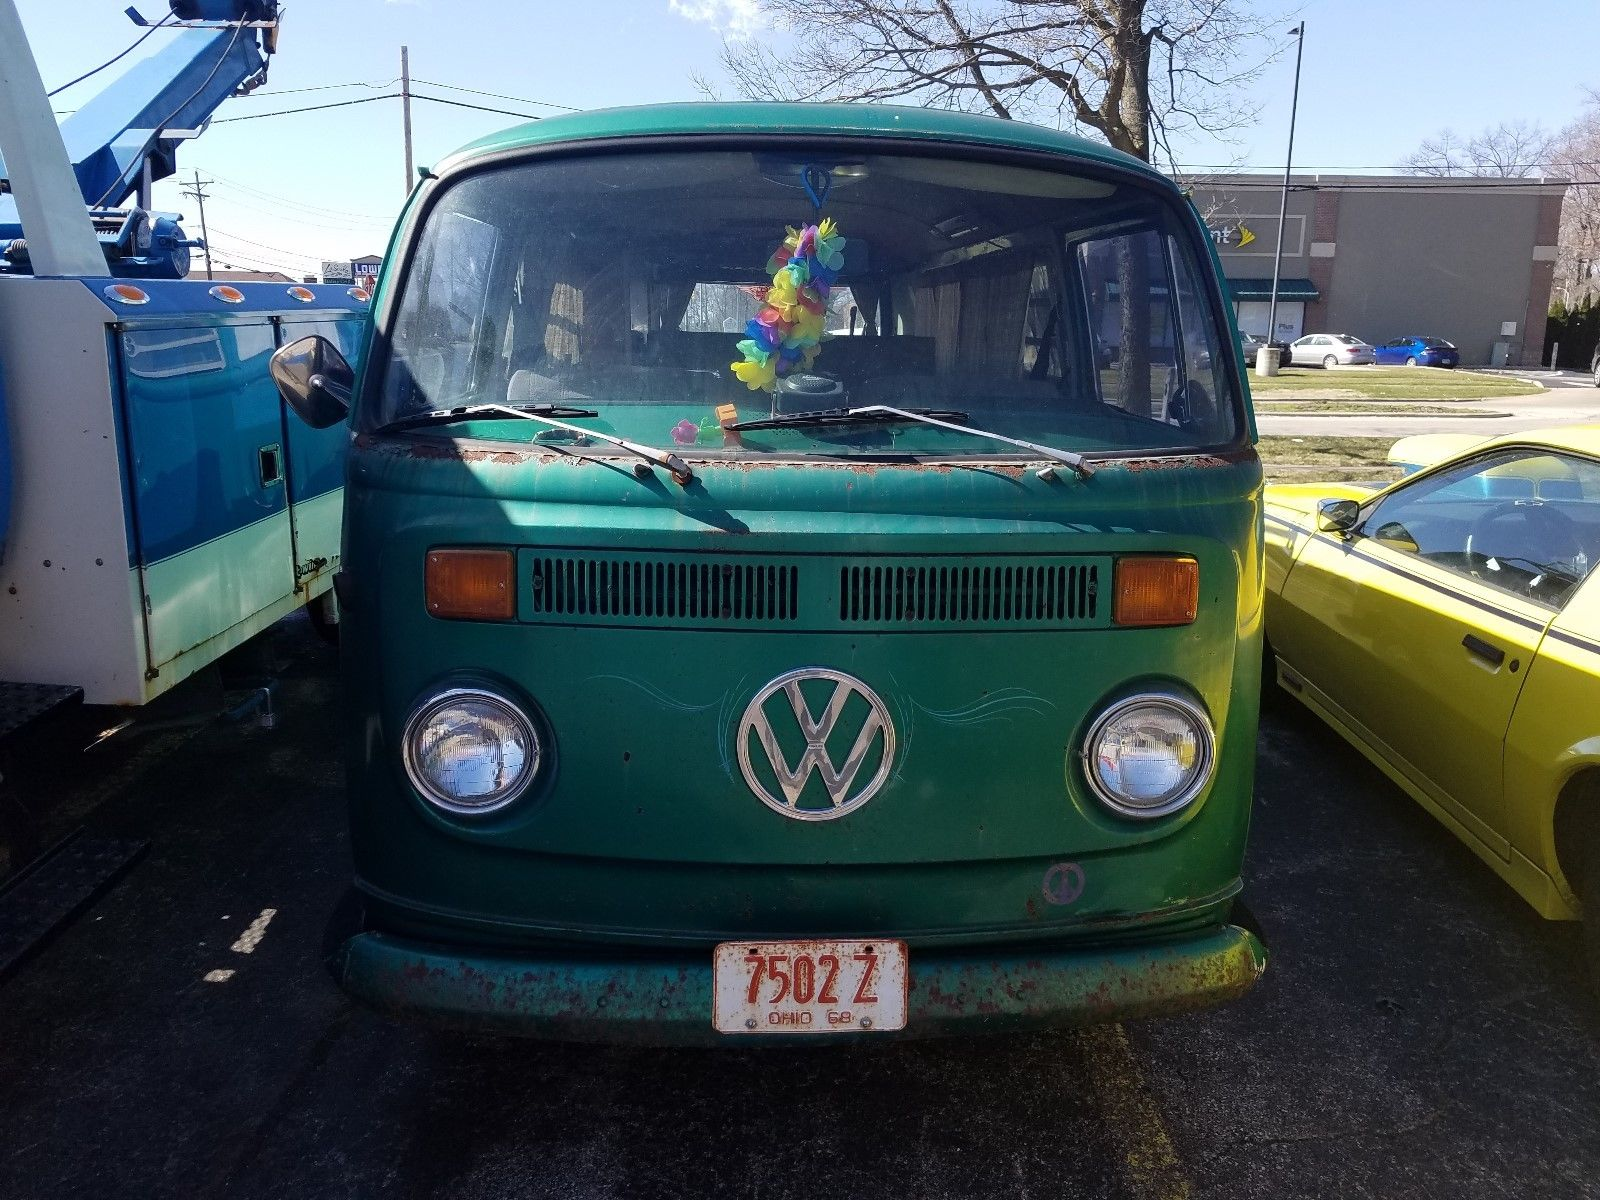 bus freedom in reduced have to volkswagen view forum image camper click thesamba split fullscreen may com topic been viewtopic size vw